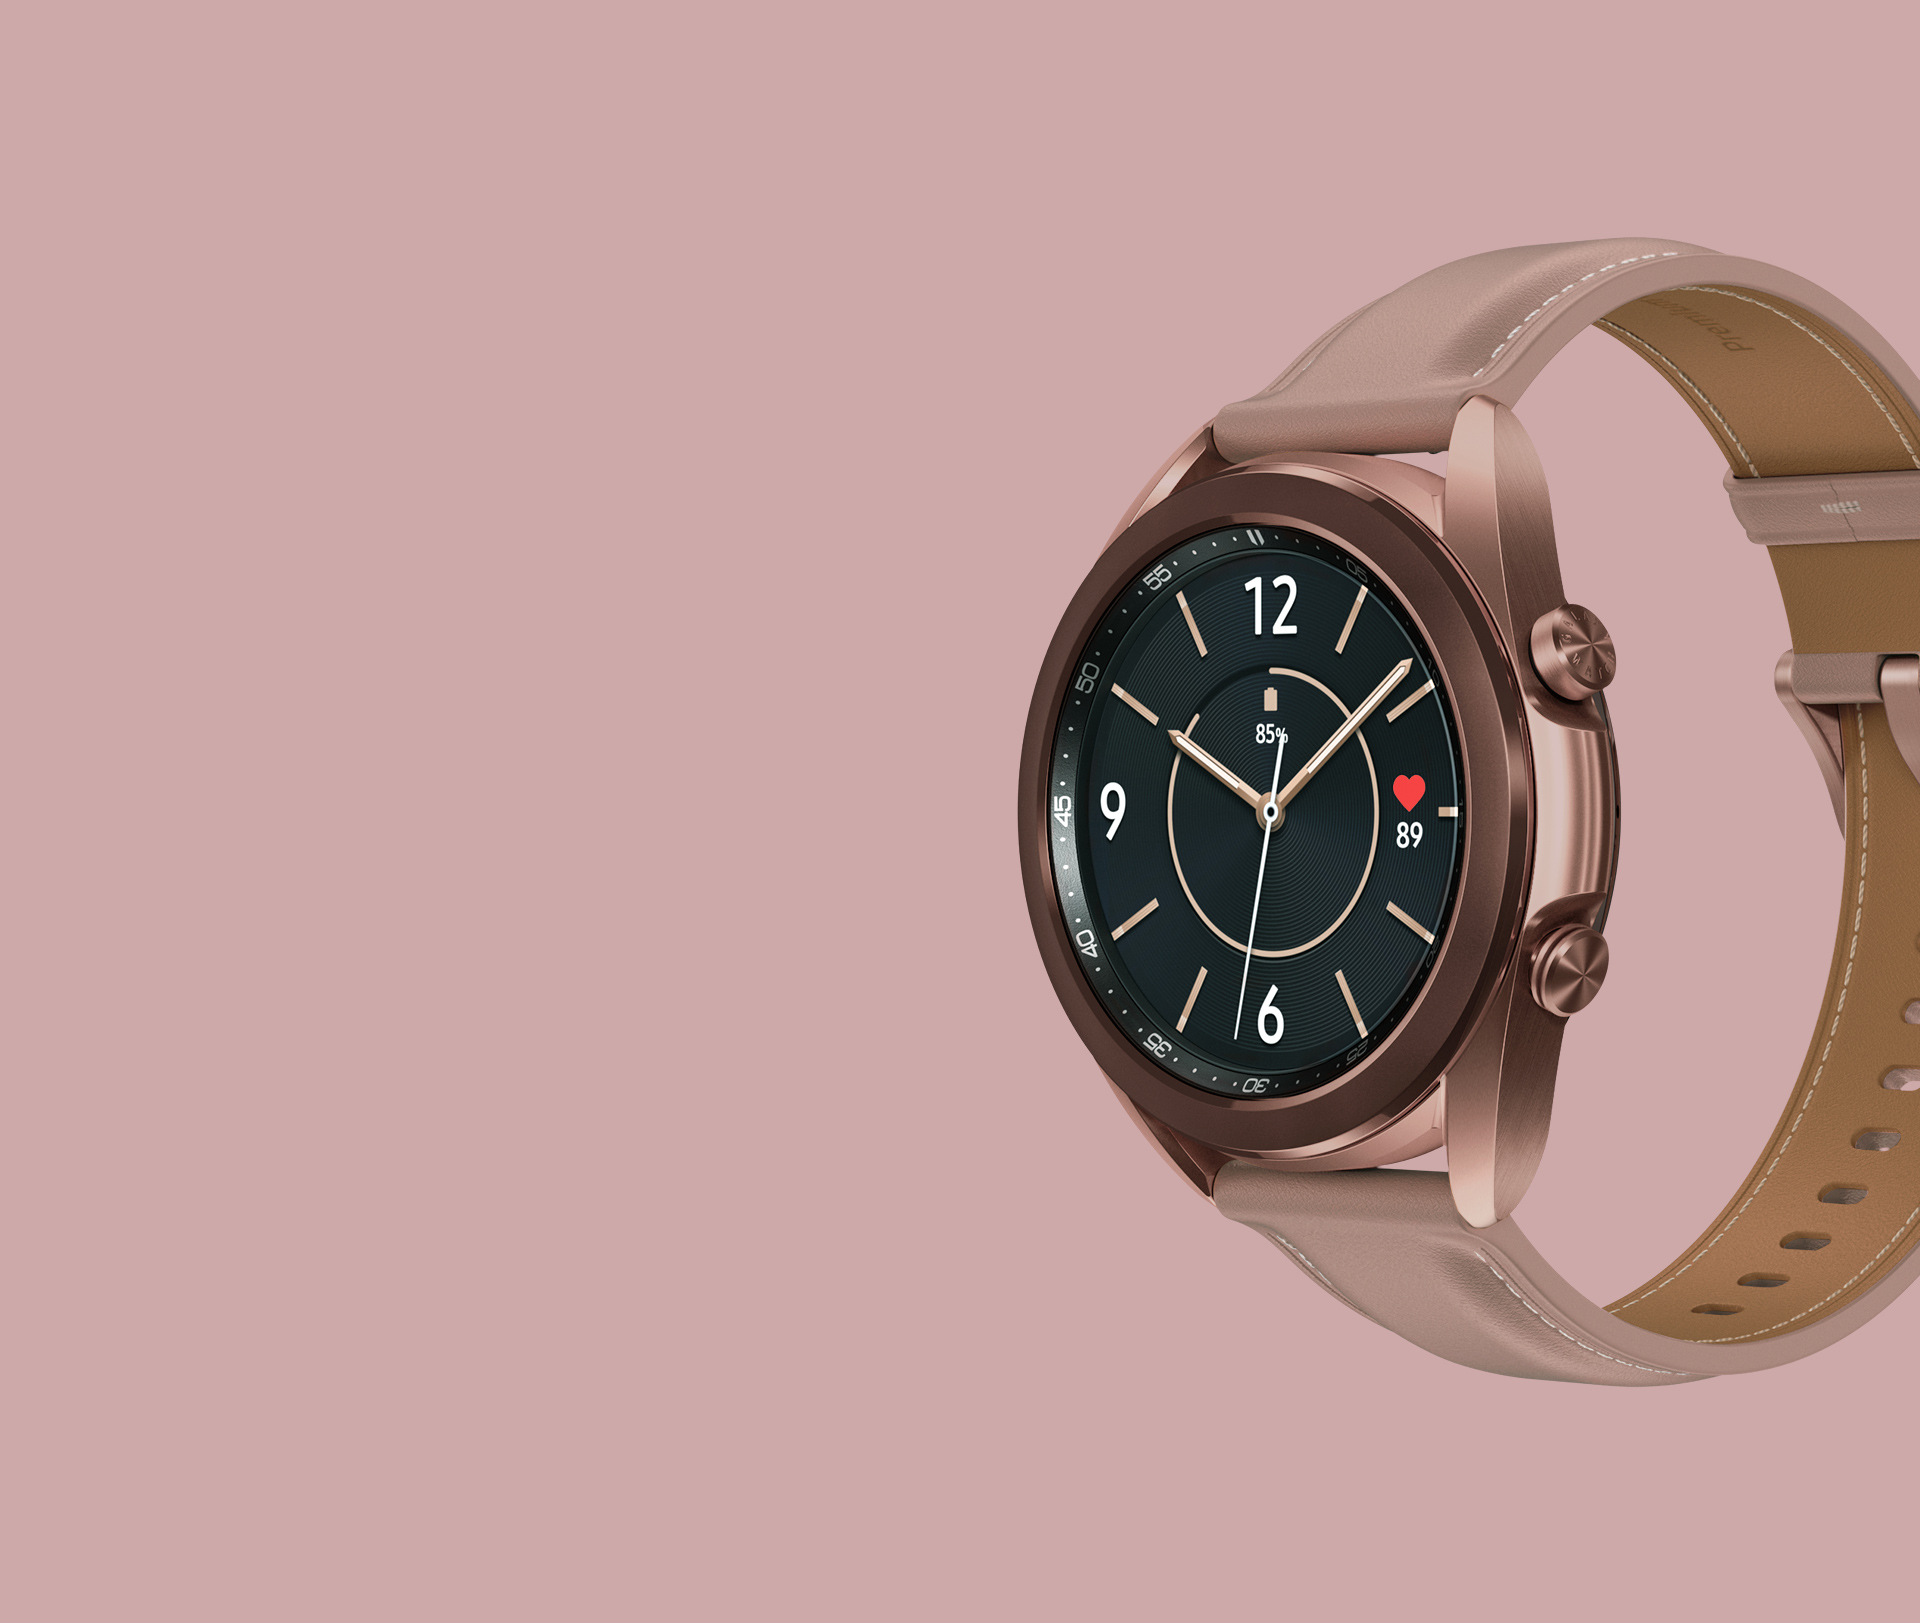 Description: 41mm Galaxy Watch3 in Mystic Bronze with a Female Classic Watch Face seen from an angle